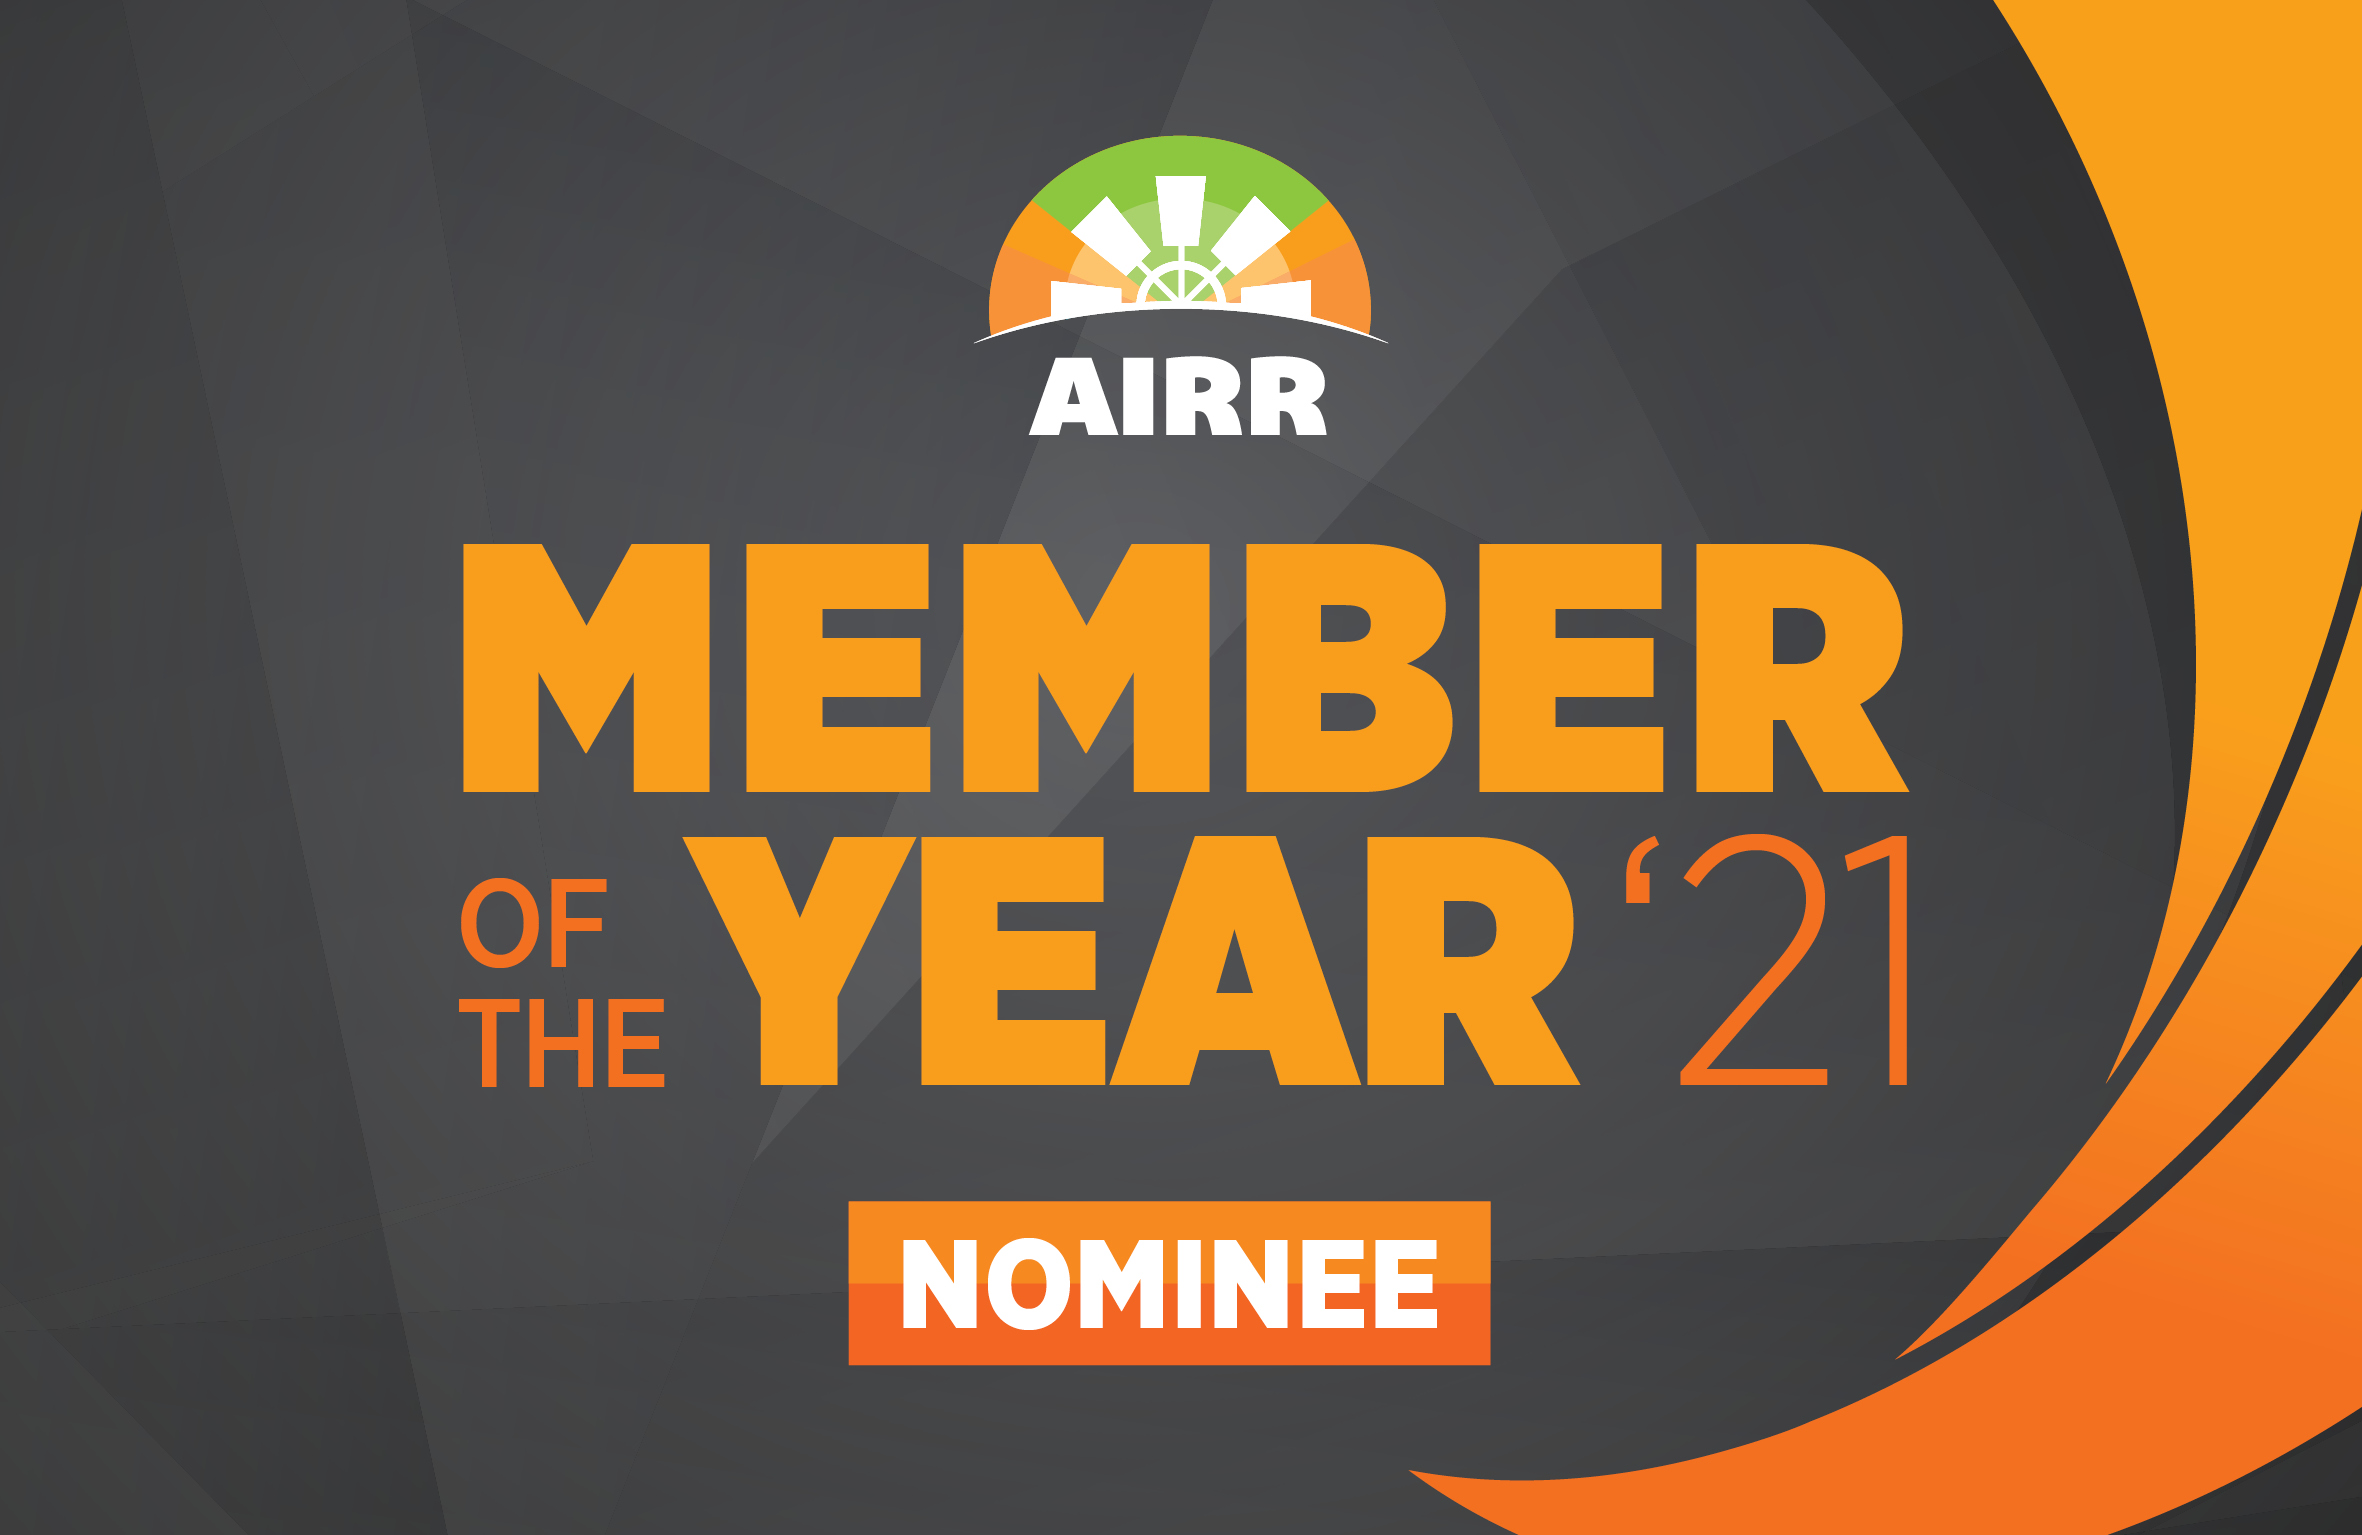 Farmer's Mailbox nominated for the AIRR's 'Member of the Year 21' award for Victoria.